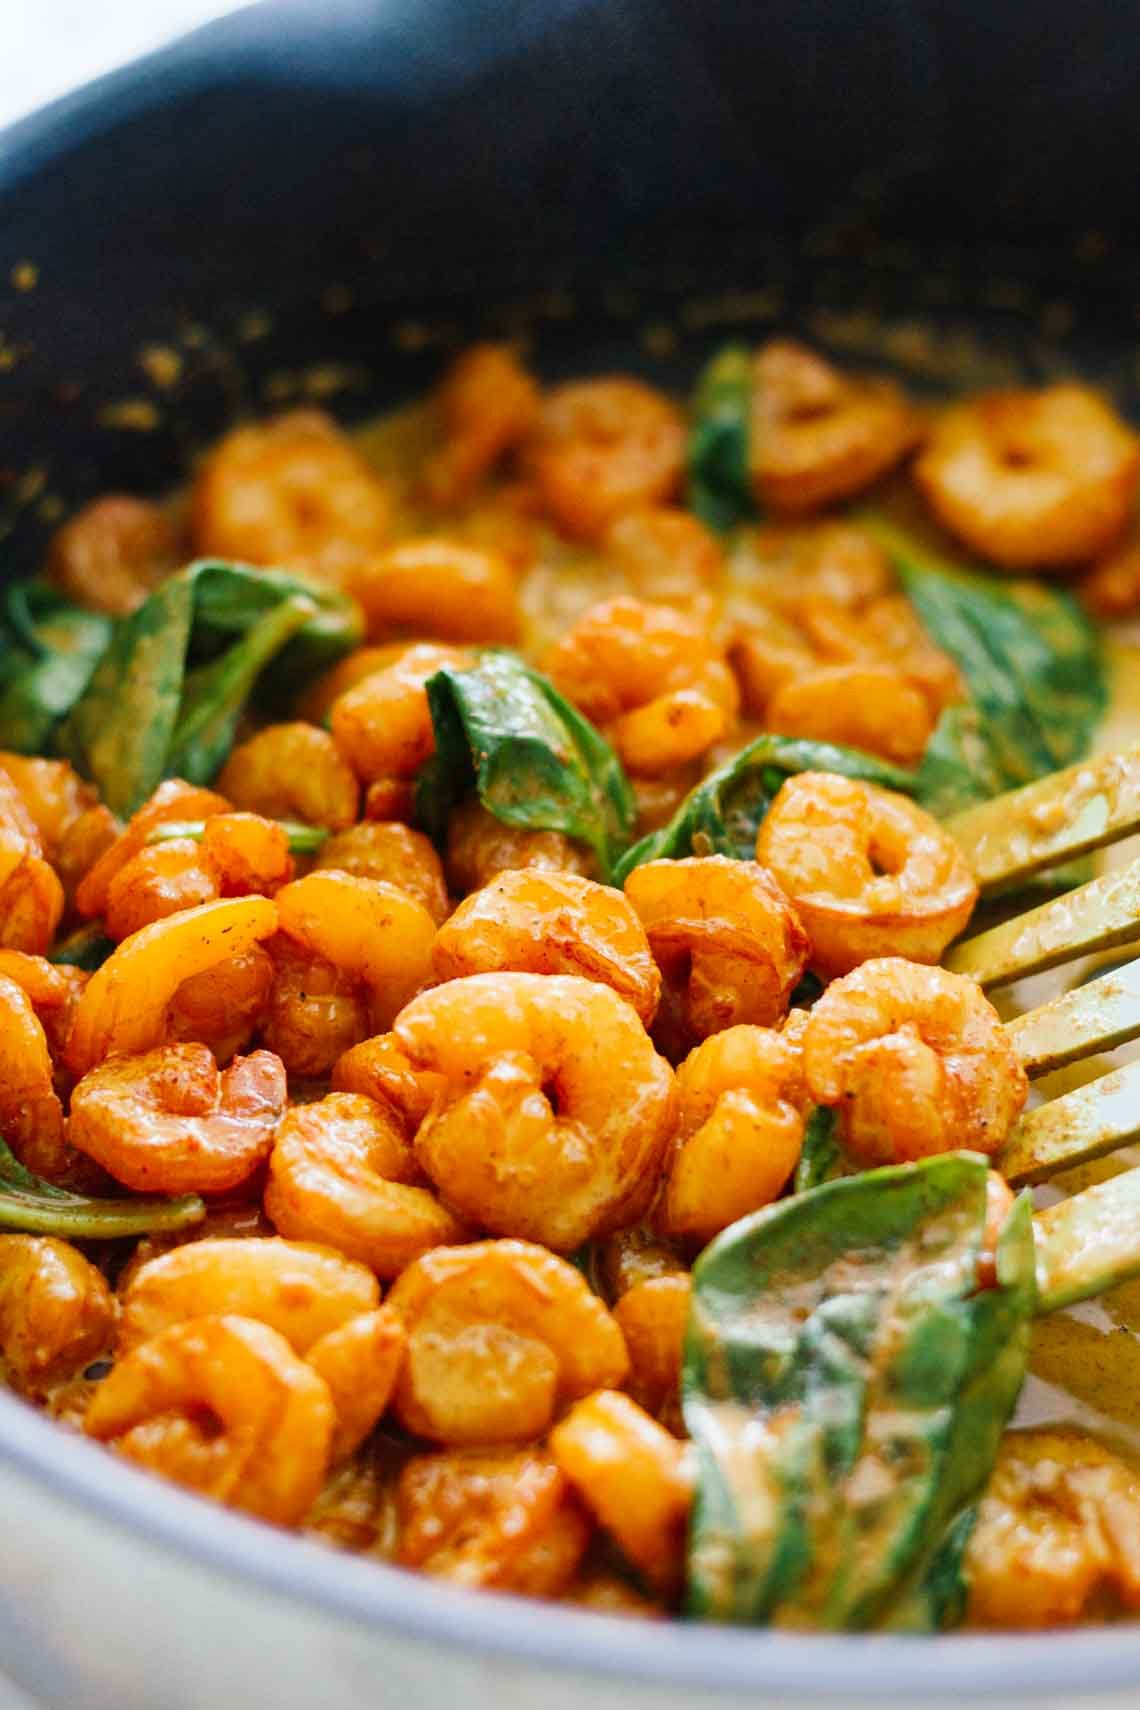 Thai Coconut Curry Shrimp! Healthy, gluten free, 30 minutes or less. Perfect for an easy weeknight dinner!